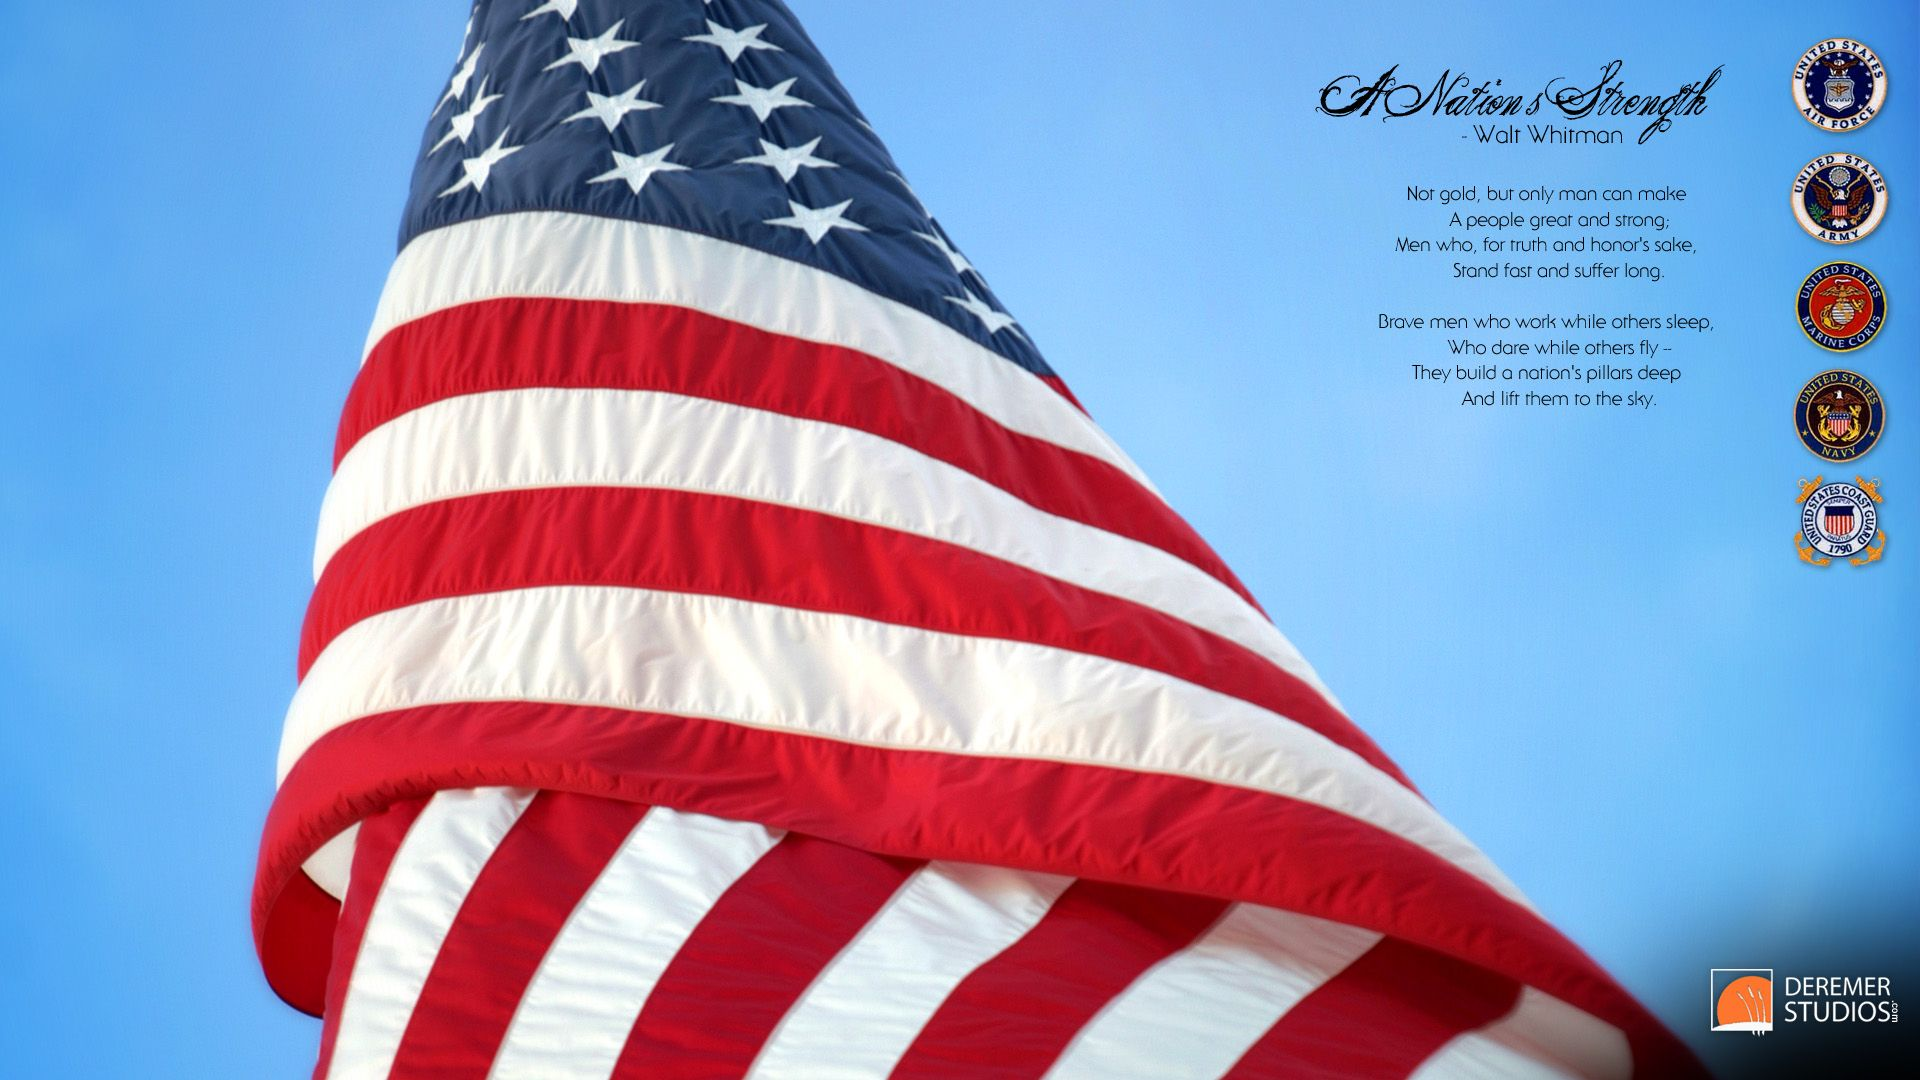 Free Veterans Day Powerpoint Backgrounds Download Powerpoint Tips Veterans Day Images Veterans Day Photos Free Veterans Day